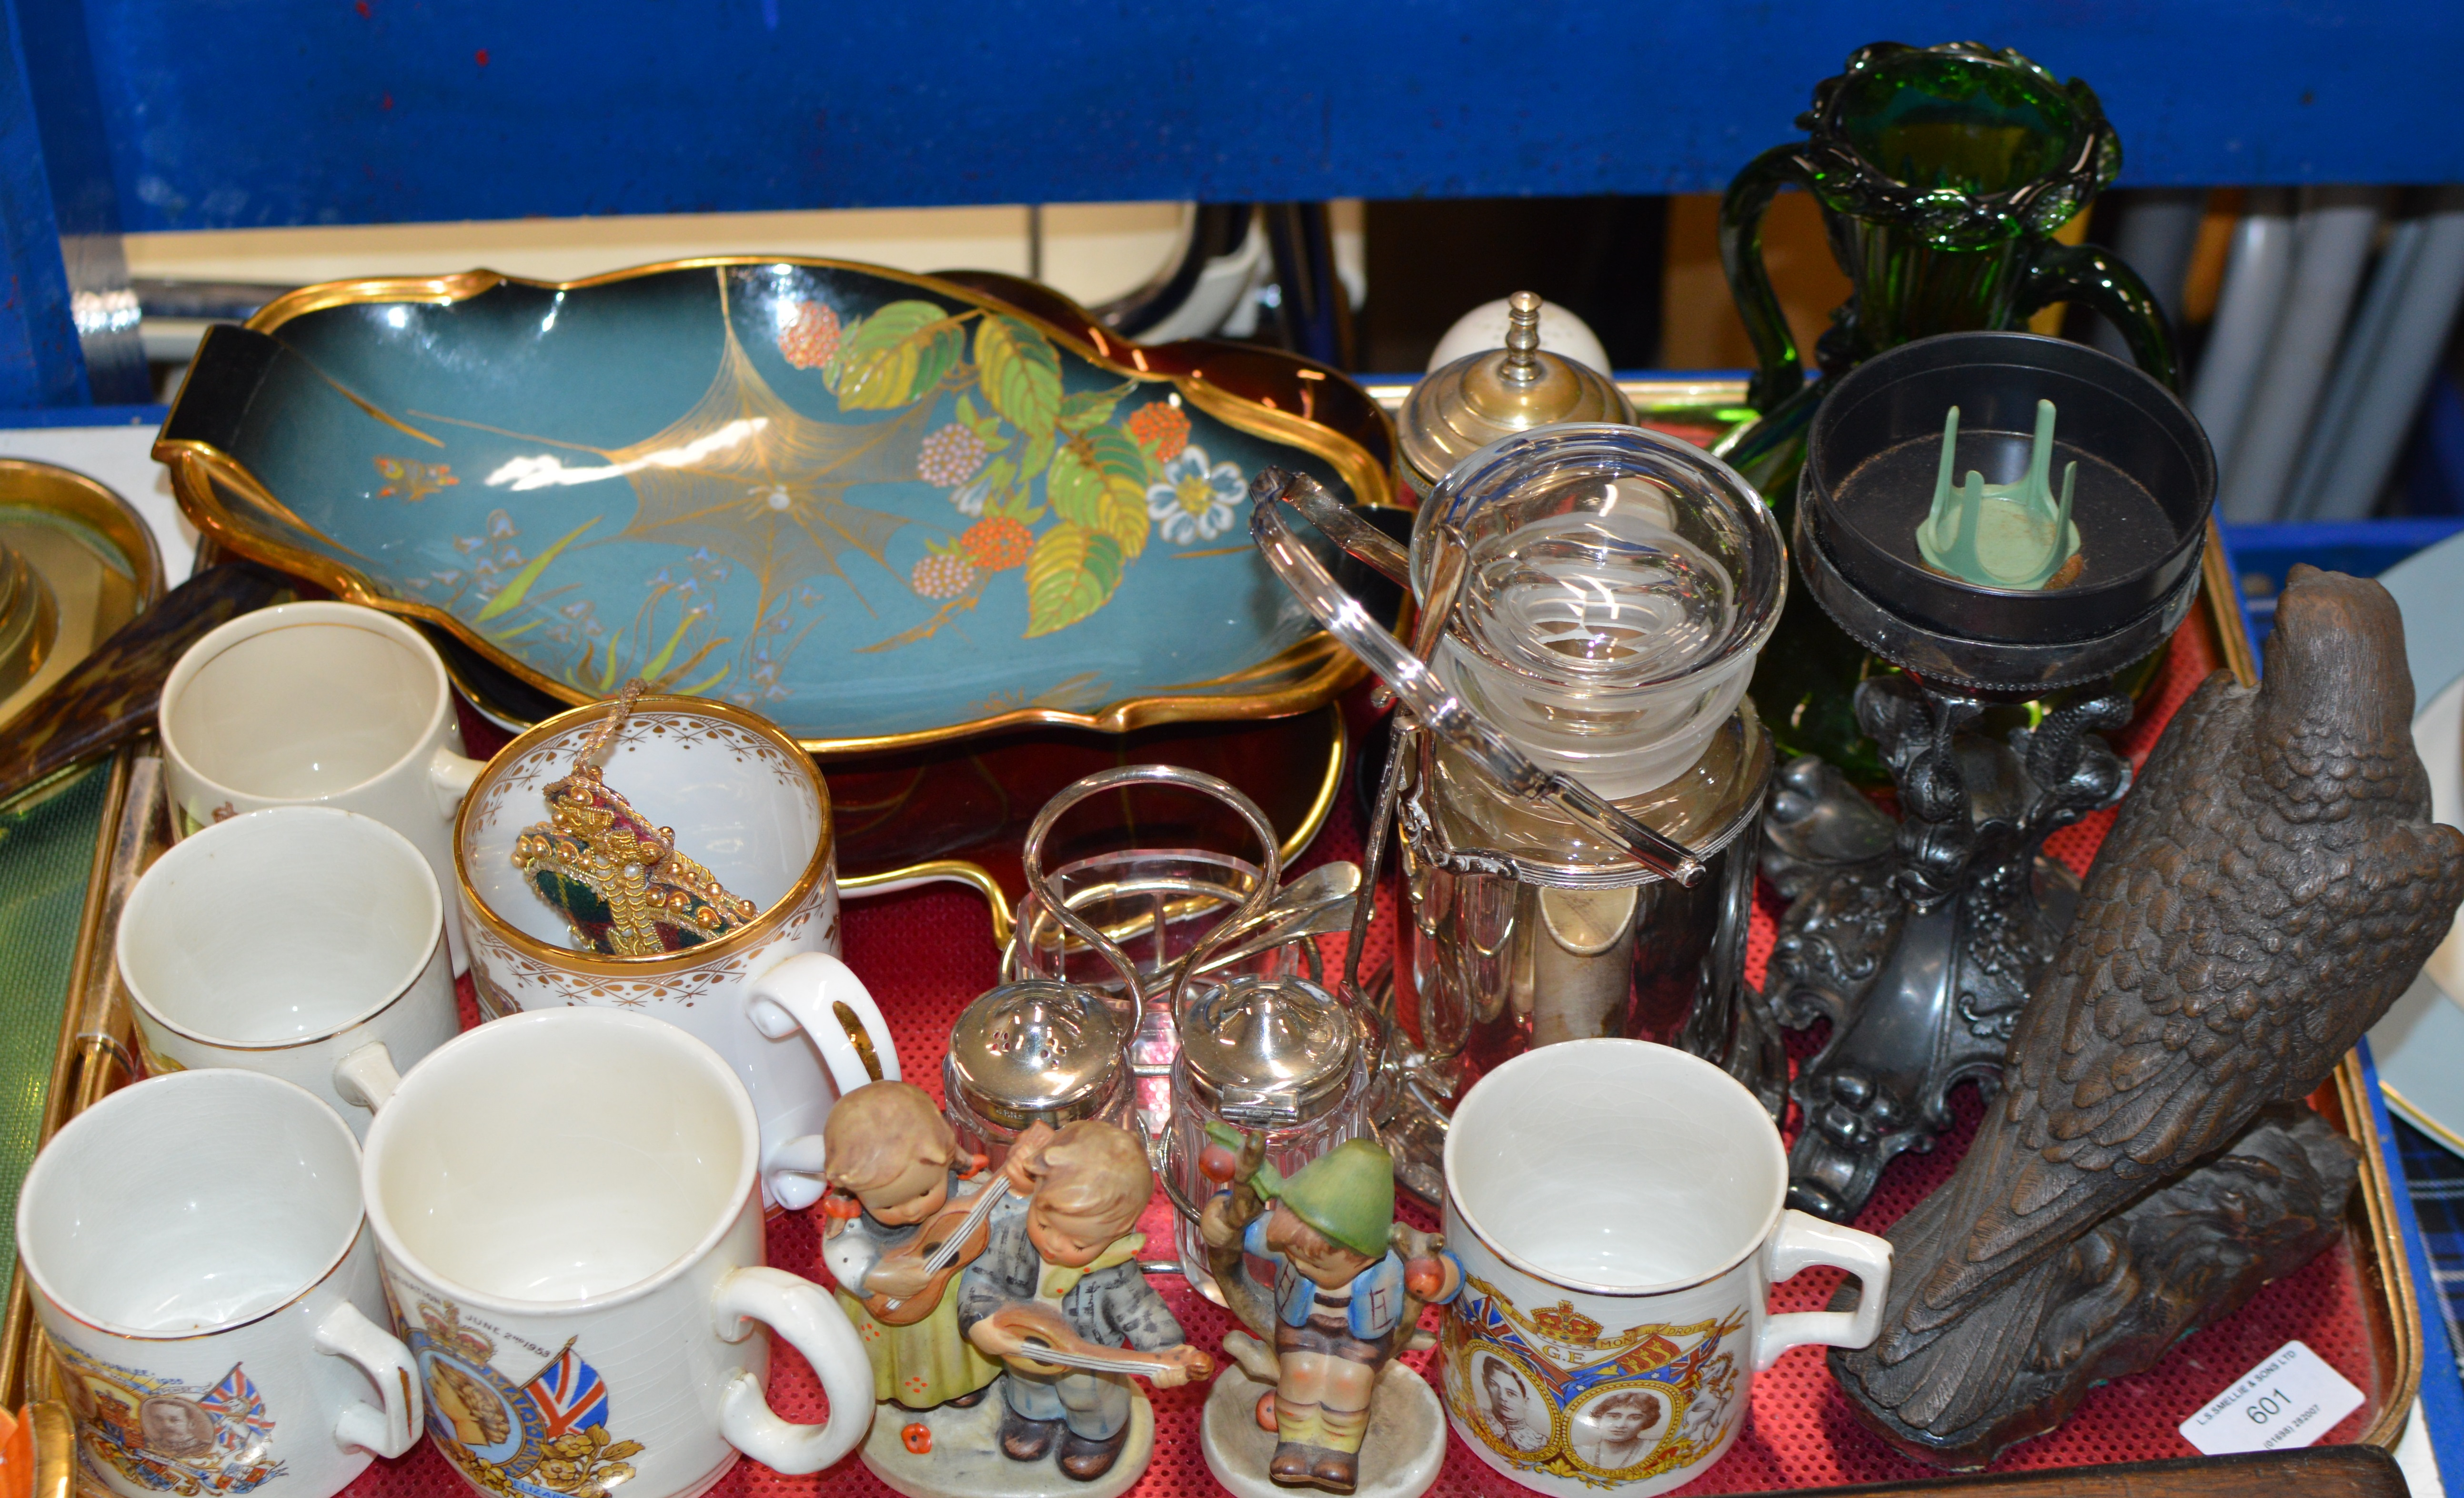 Lot 601 - TRAY CONTAINING EAGLE ORNAMENT, HUMMEL FIGURINES, CARLTON WARE DISHES, GLASS JUG, CANDLE HOLDER,